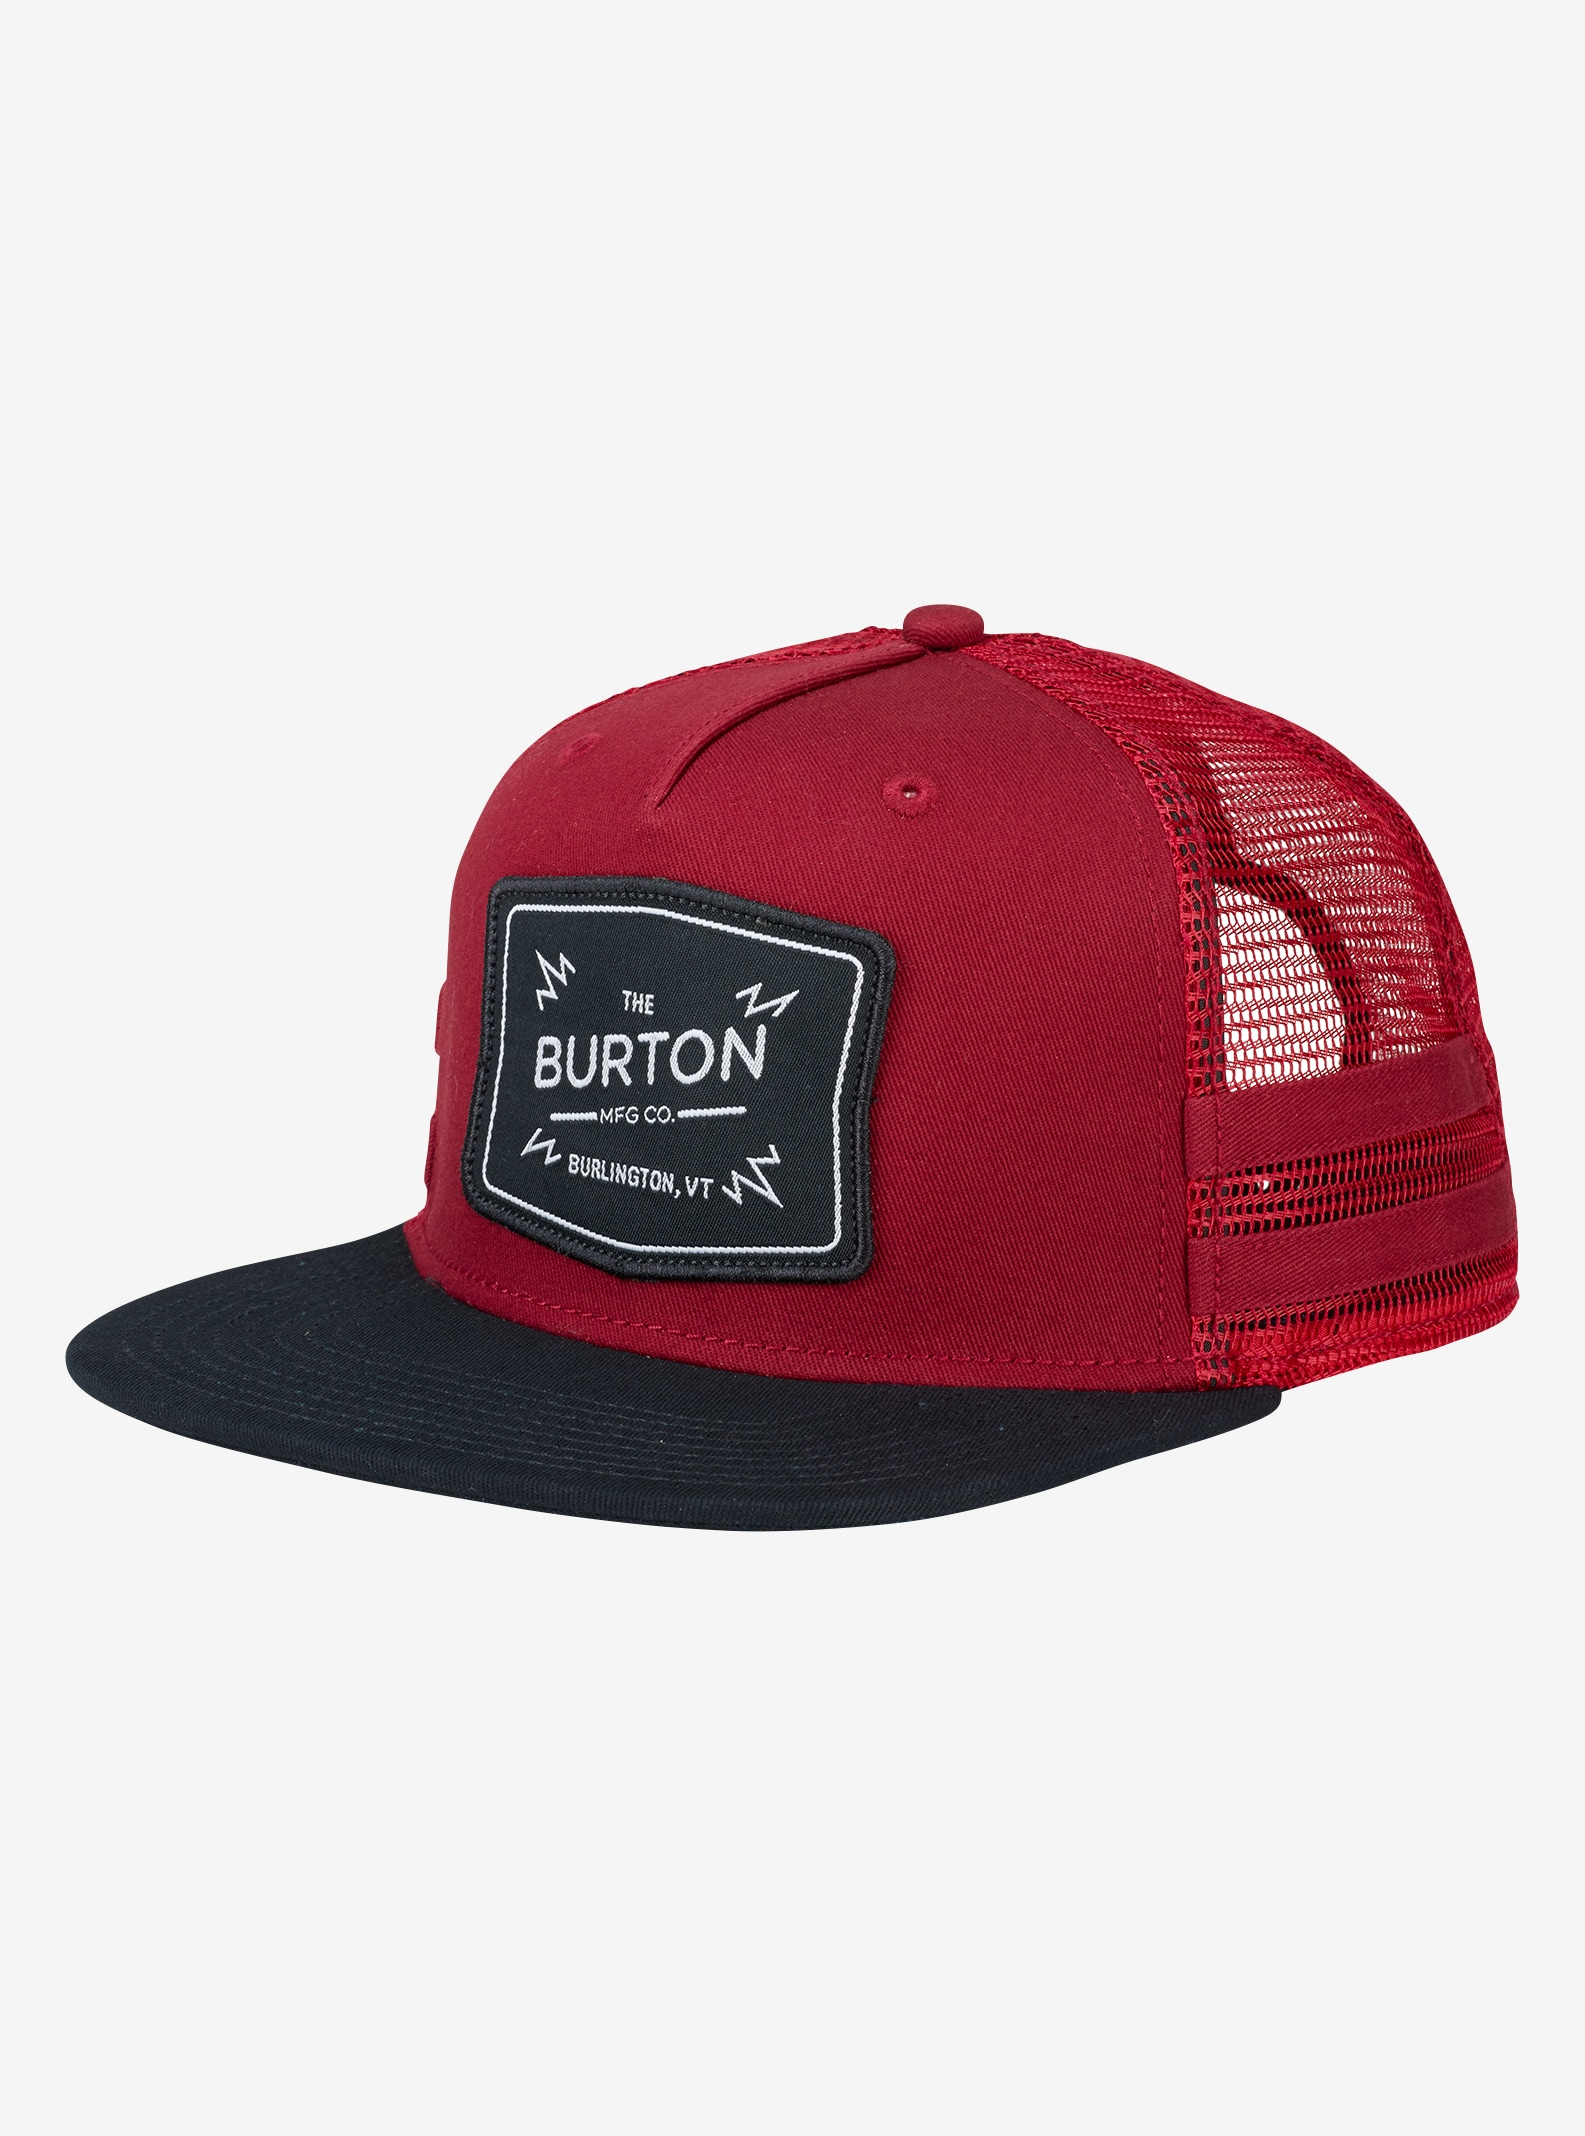 Men's Burton Bayonette Snapback Hat shown in Bitters